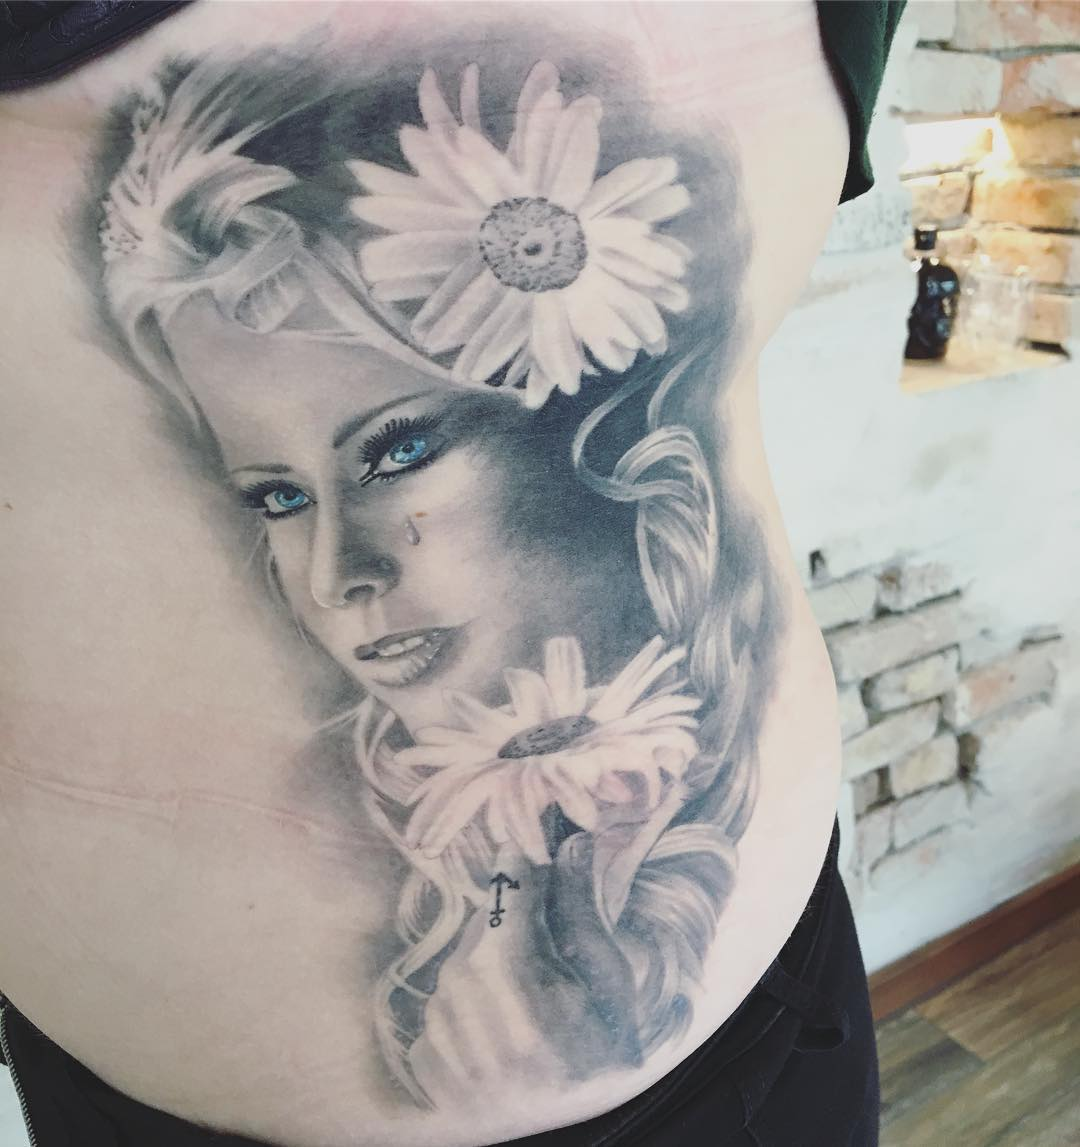 65 Best Images About 3d Tattoos For Girls Pinterest On: 65 Amazing 3D Tattoo Designs For Women